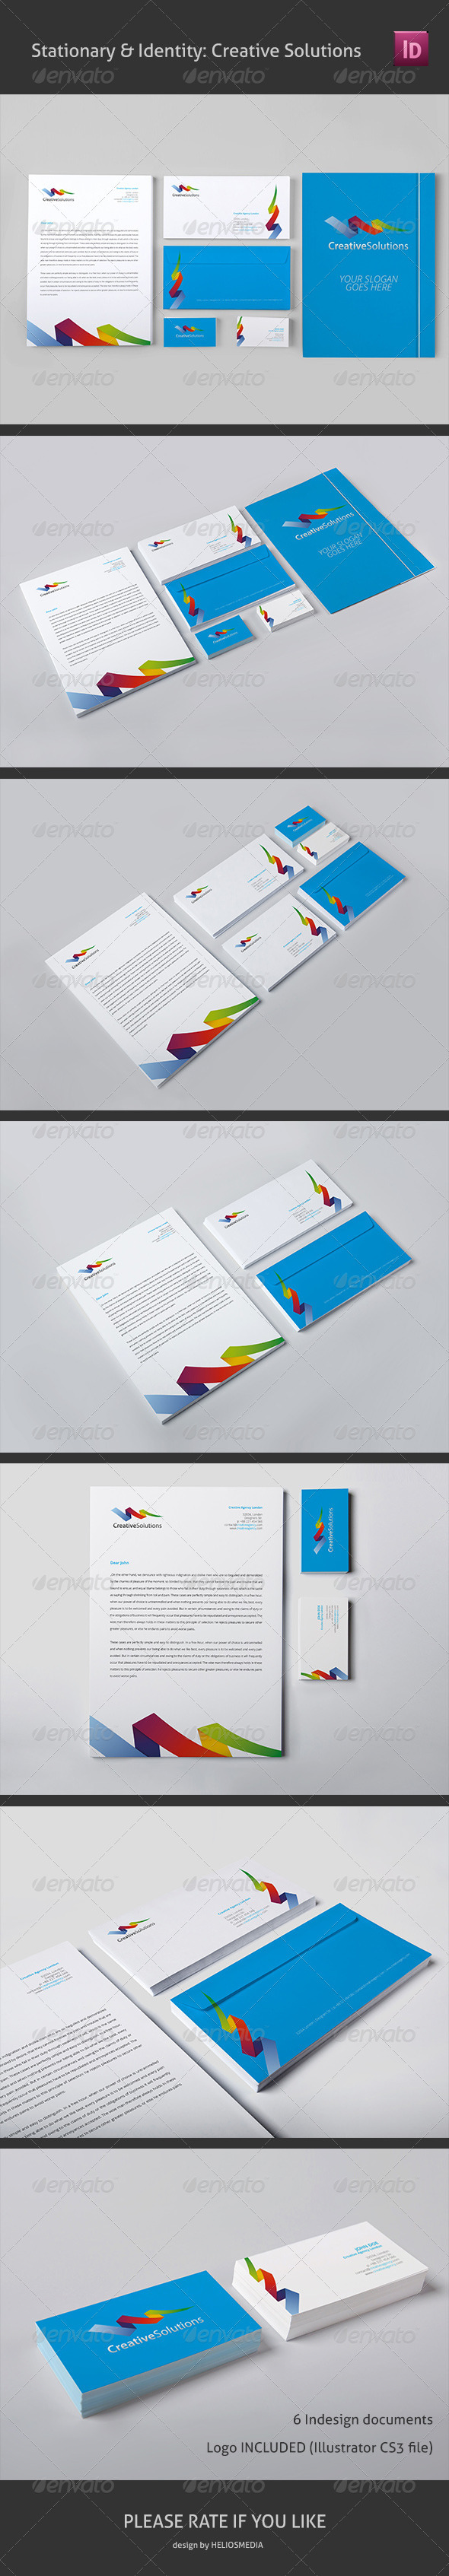 GraphicRiver Stationary & Identity Creative Solutions 3722106